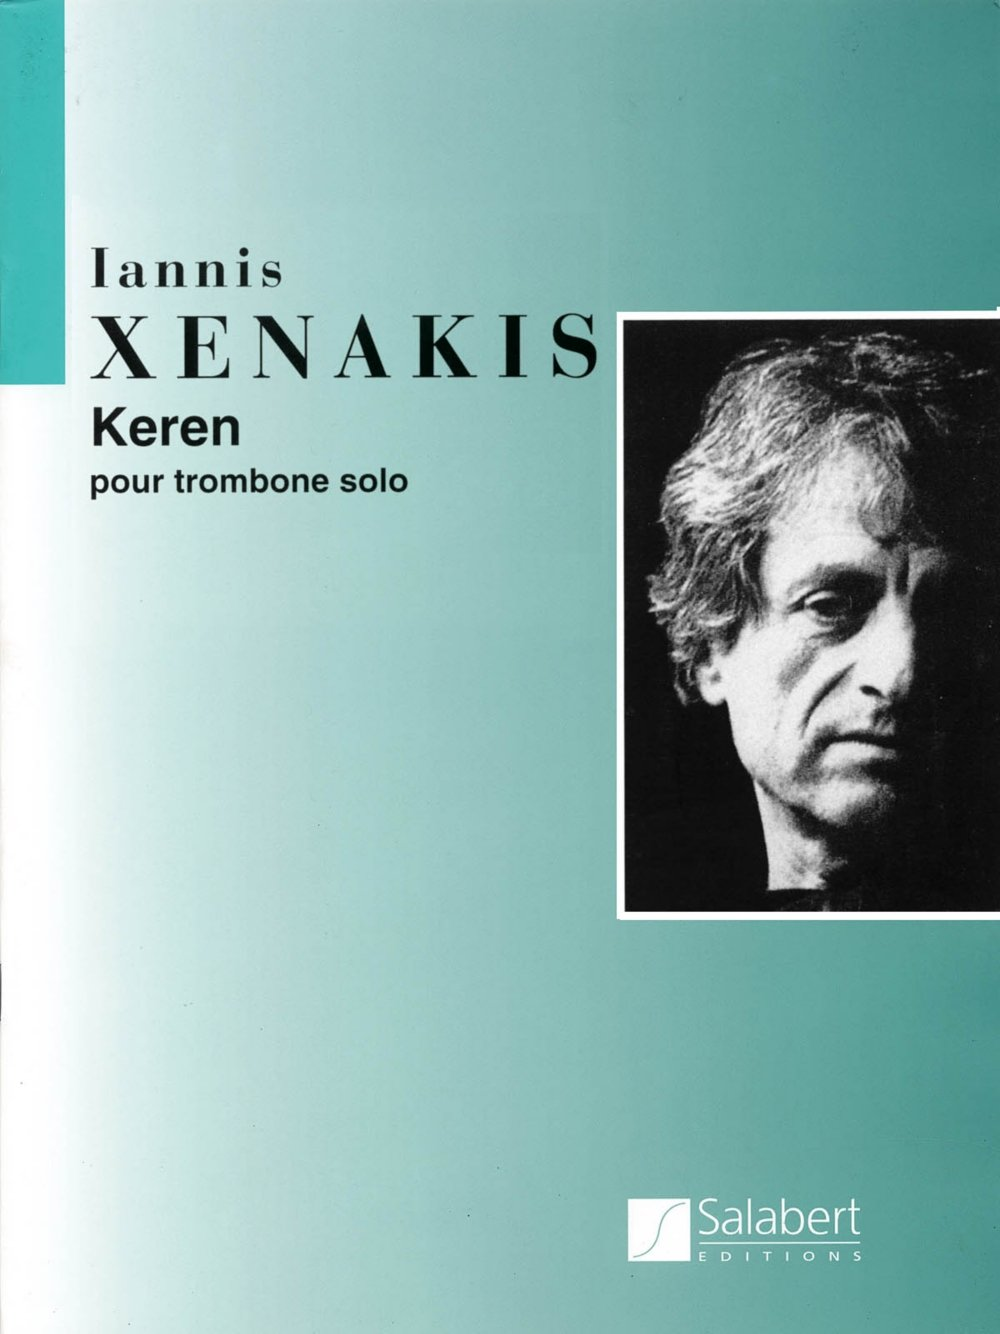 Download Editions Salabert Keren (Trombone Solo) Instrumental Series Composed by Iannis Xenakis ebook